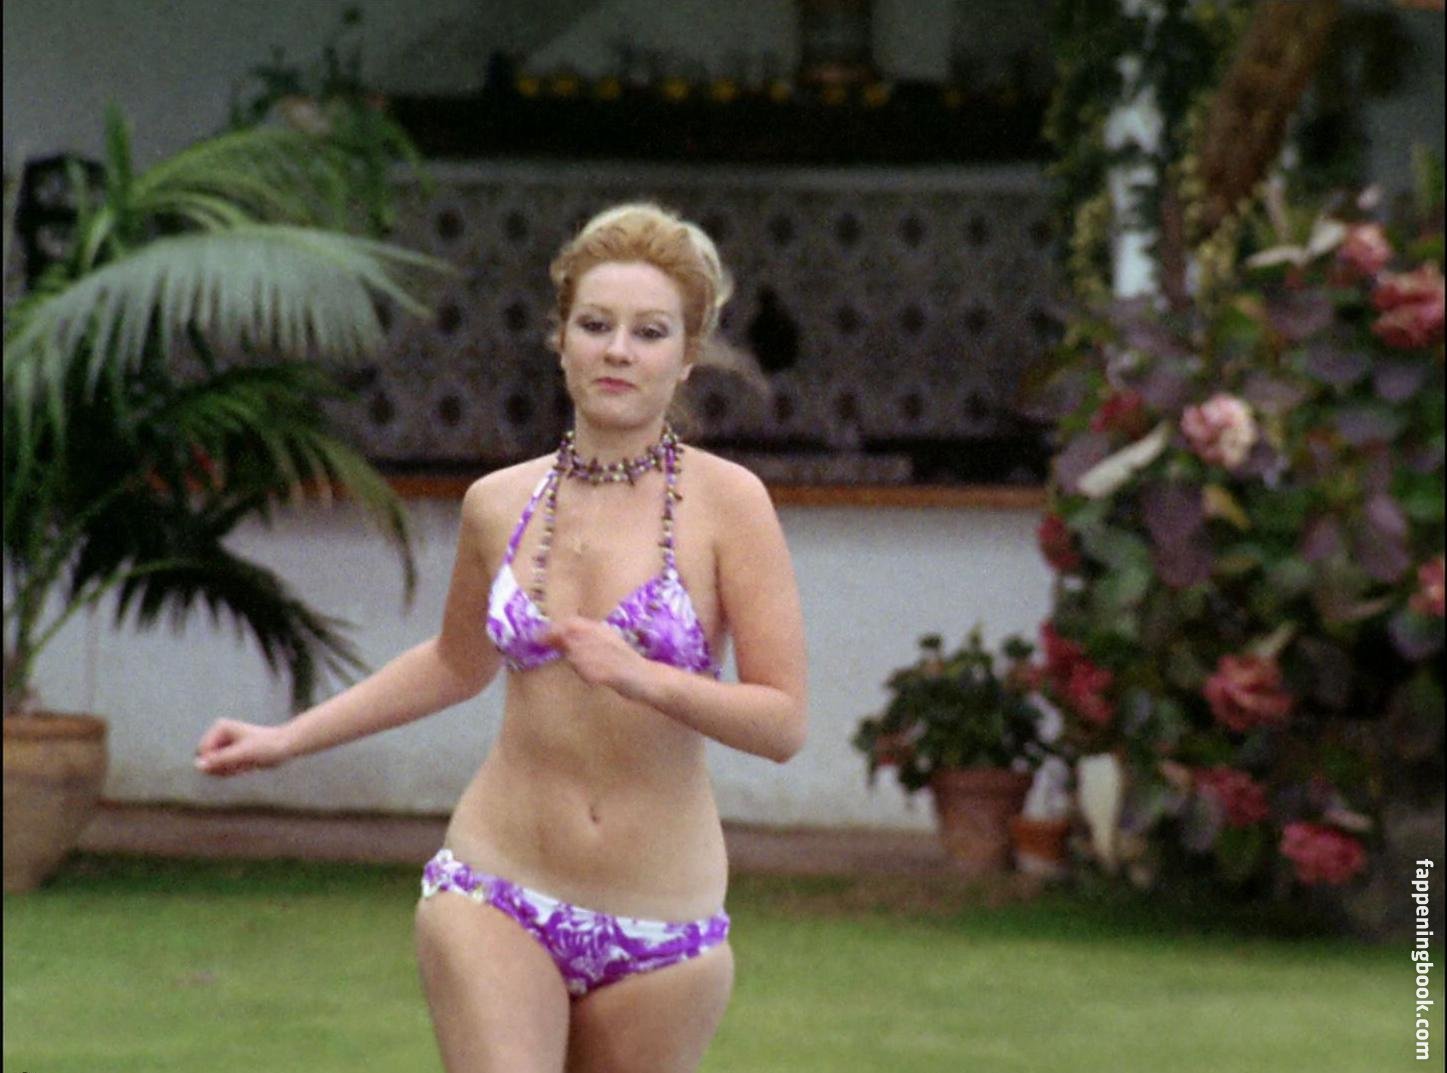 Amy Paffrath Nude mar�a kosty nude, sexy, the fappening, uncensored - photo